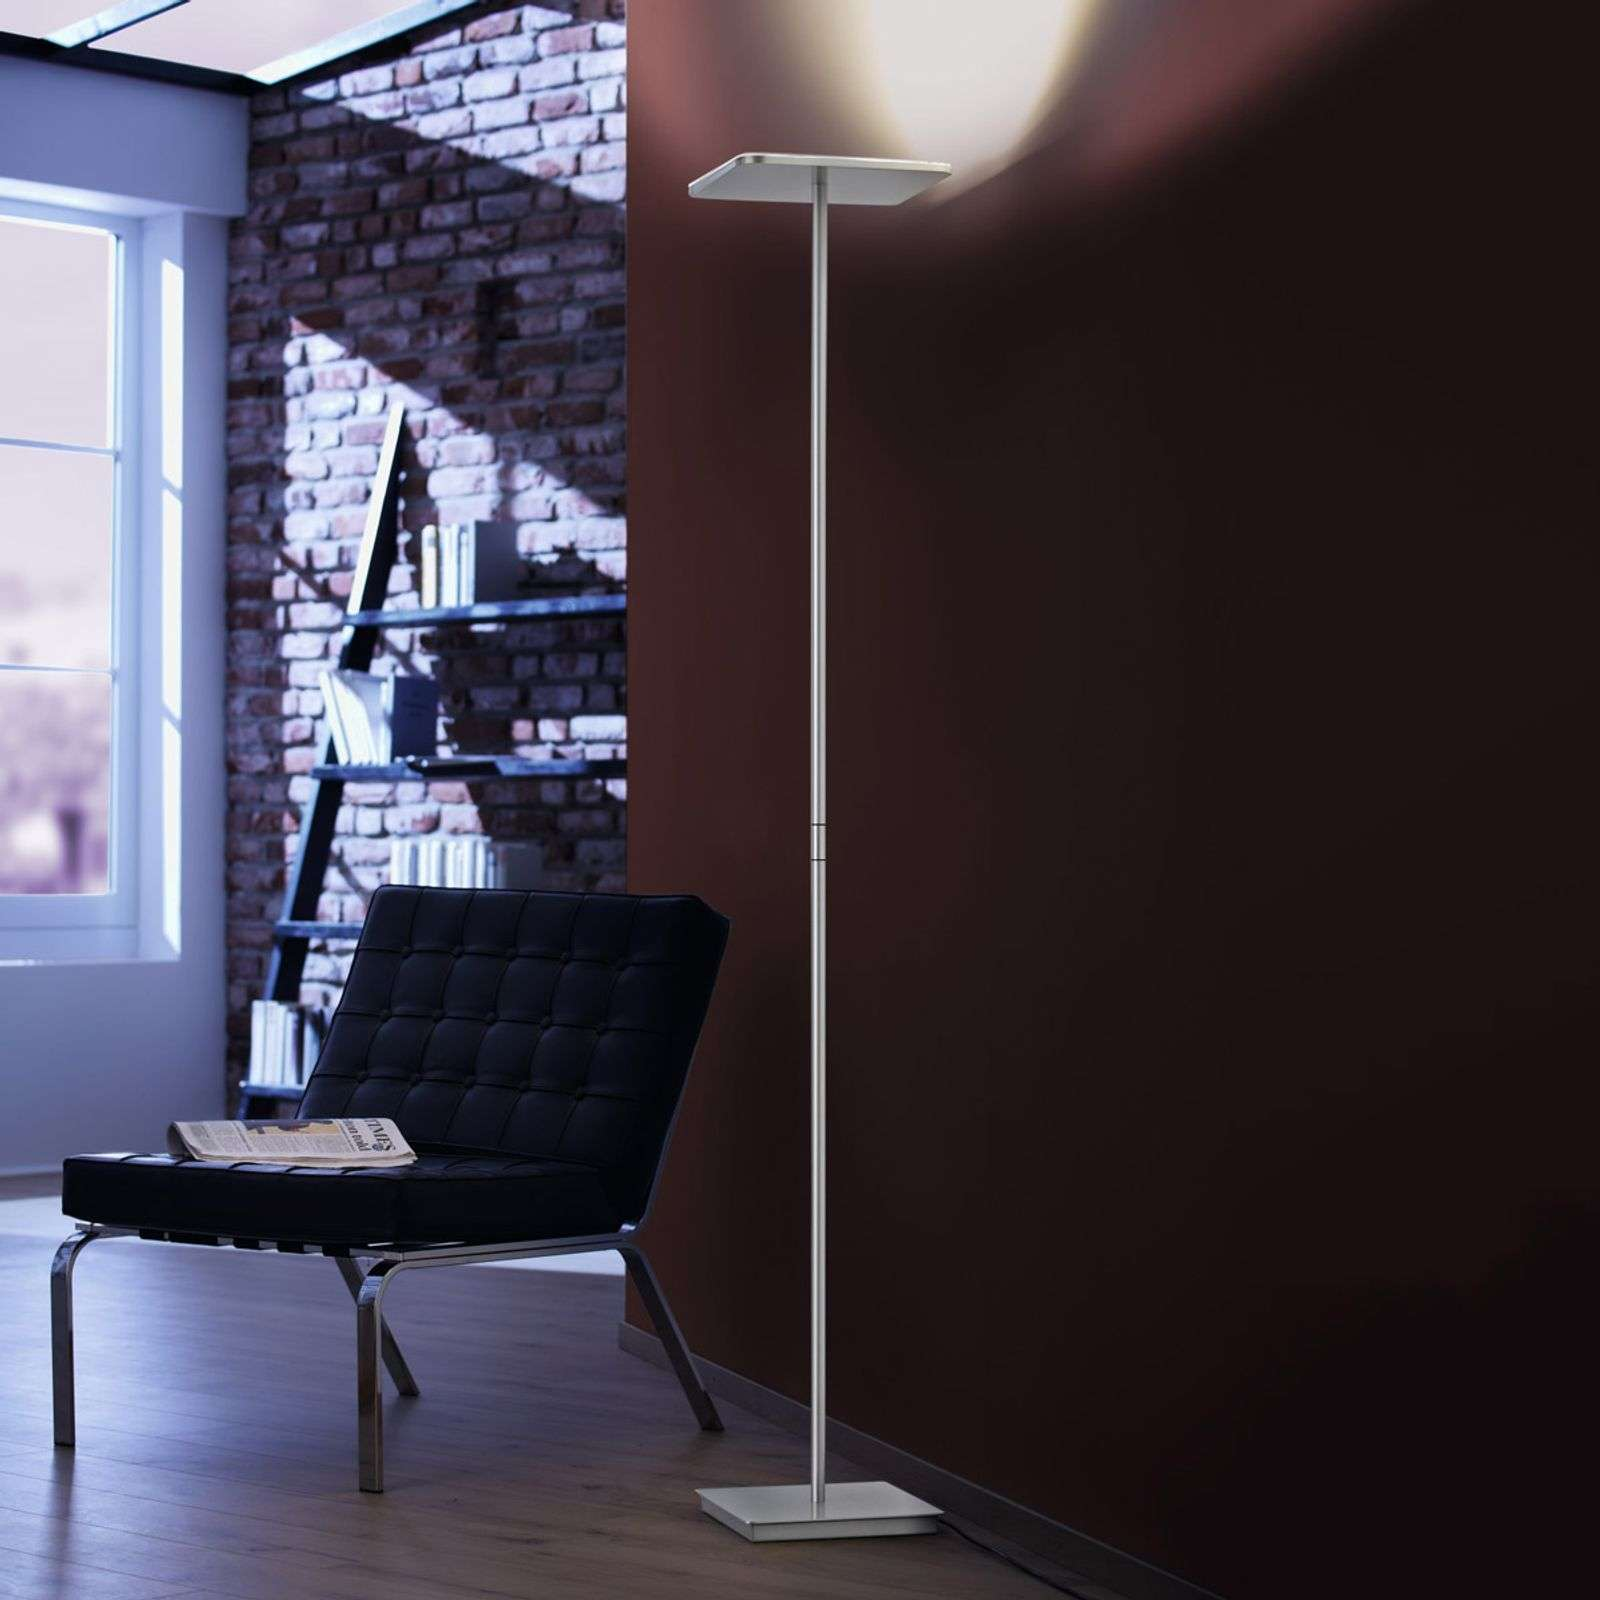 Lampadaire à éclairage indirect LED Plano V